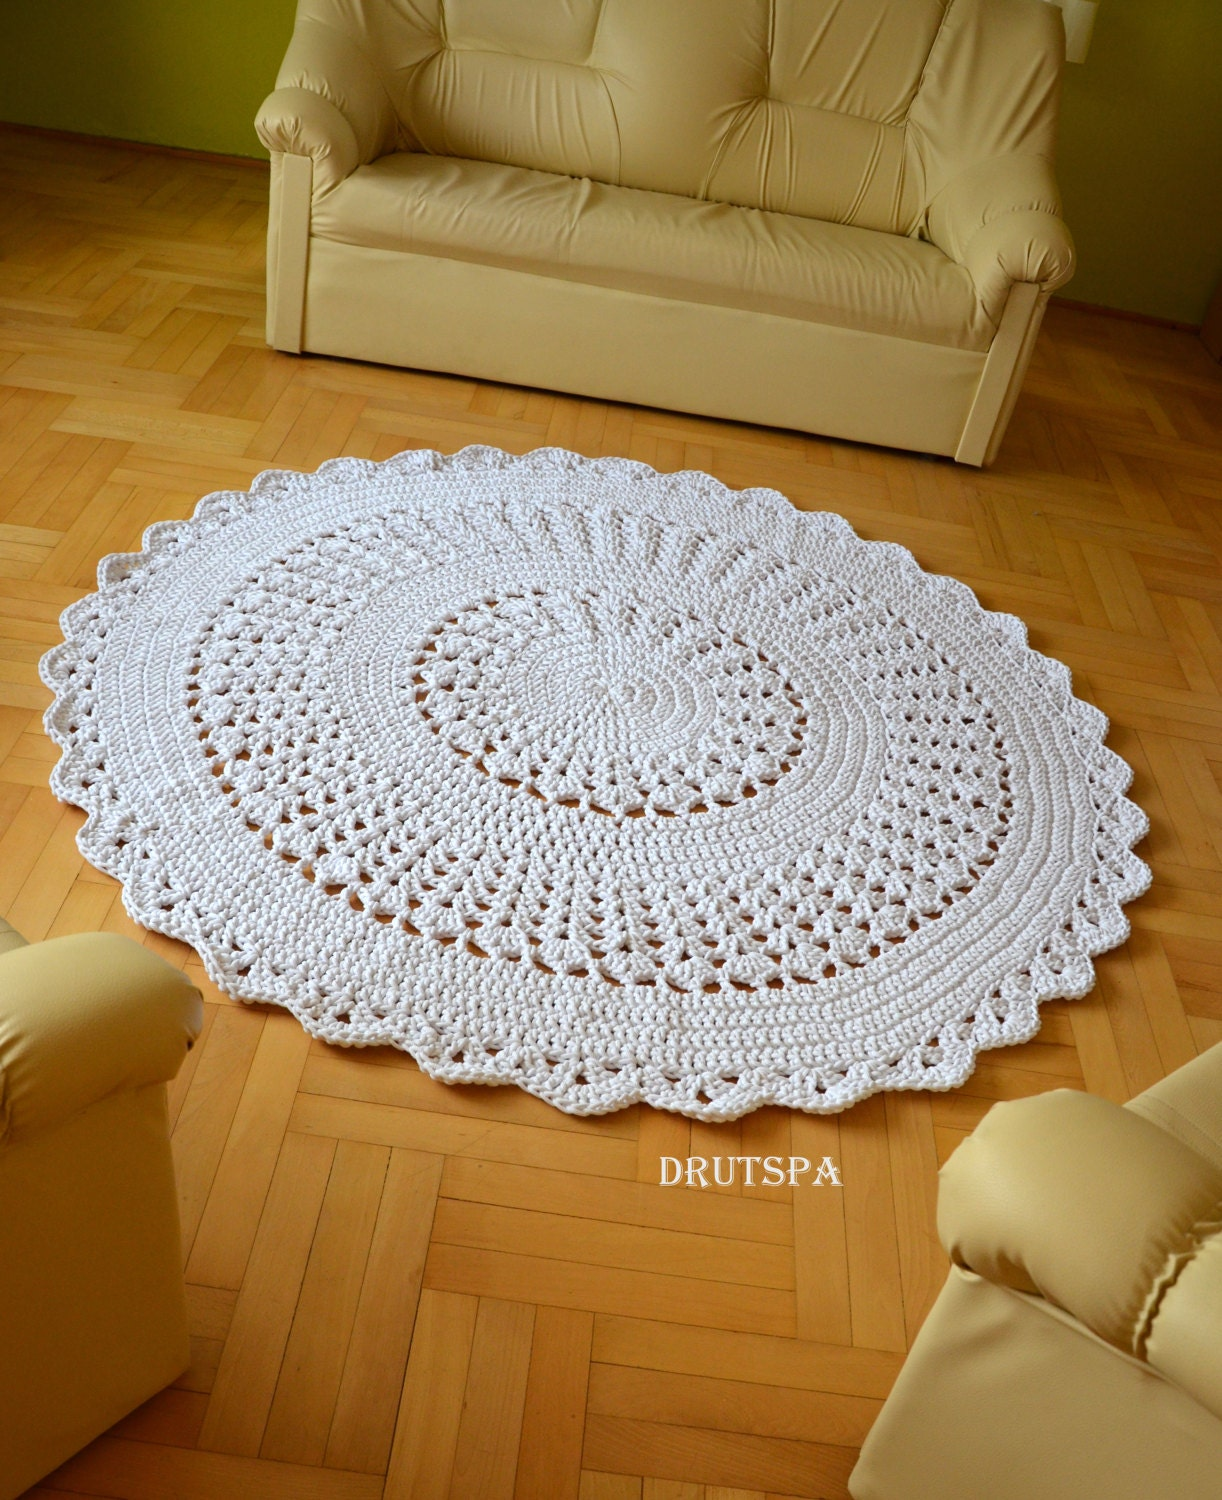 PROMOTION Many colors Shabby Chic Doilies Carpets Nursery Rug